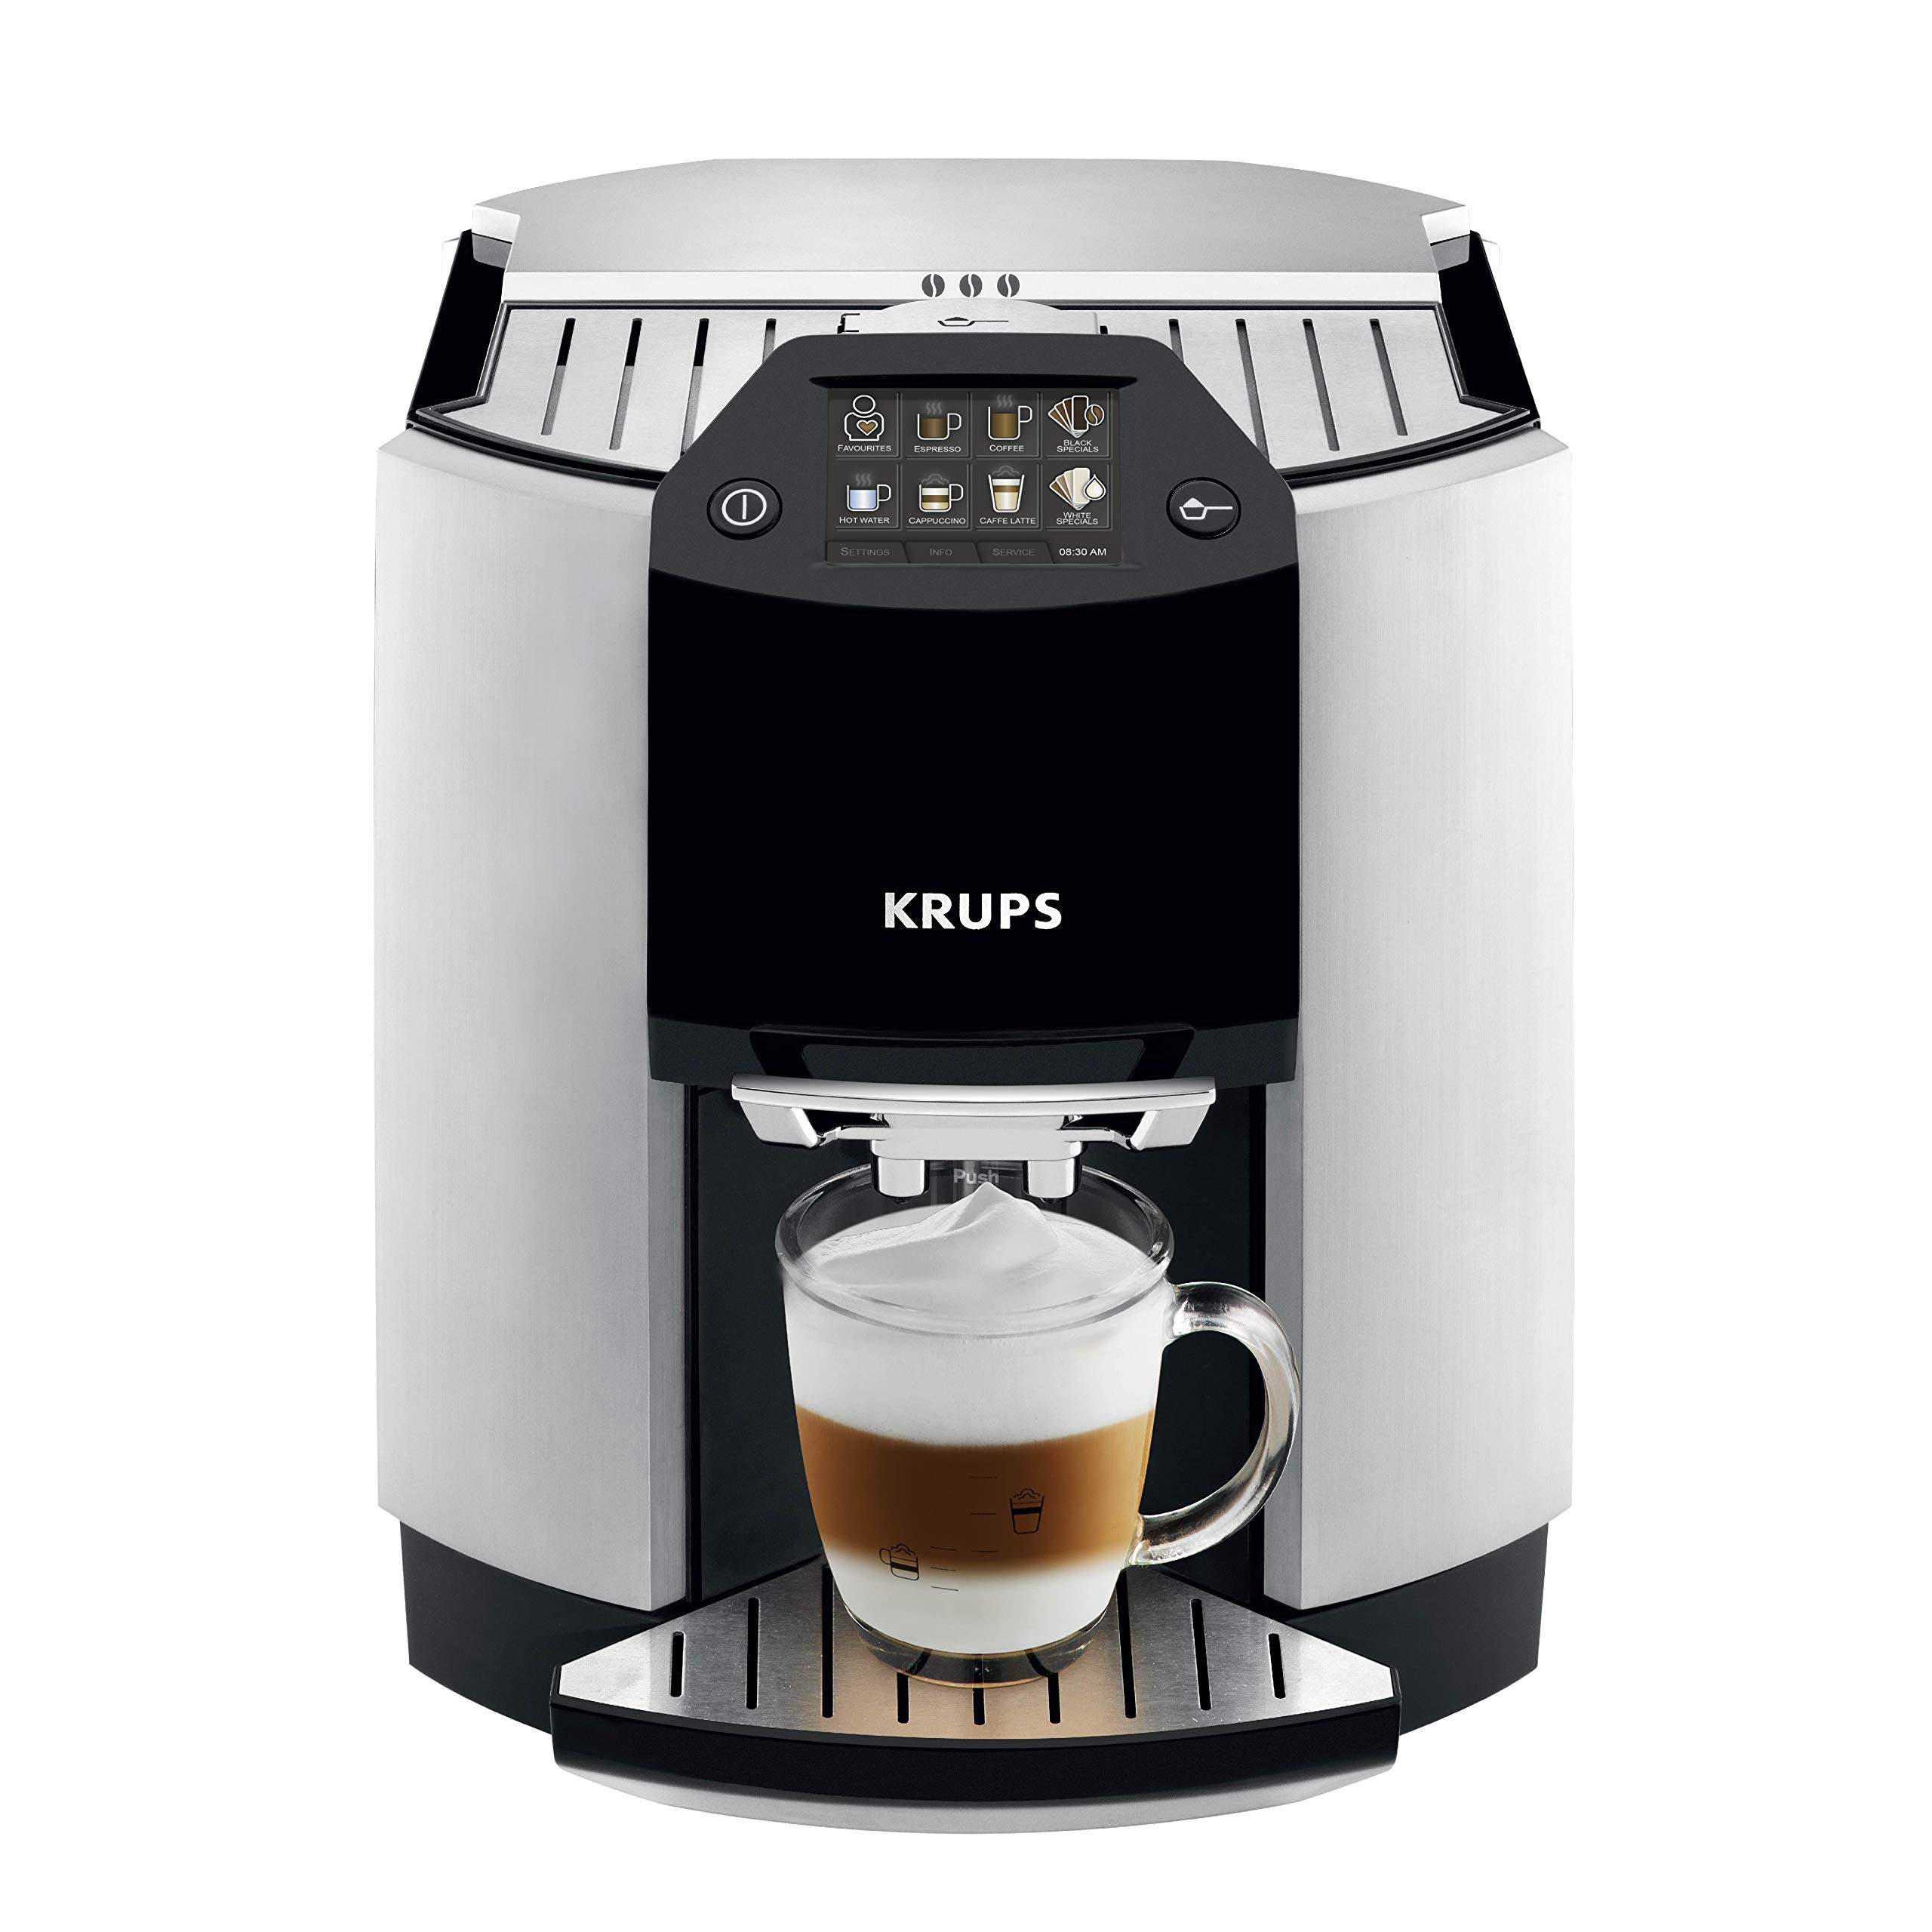 KRUPS EA9010 Fully Auto Cappuccino Machine Espresso Maker, Automatic Rinsing, Two Step Milk Frothing Technology, 57 Ounce, Silver by KRUPS